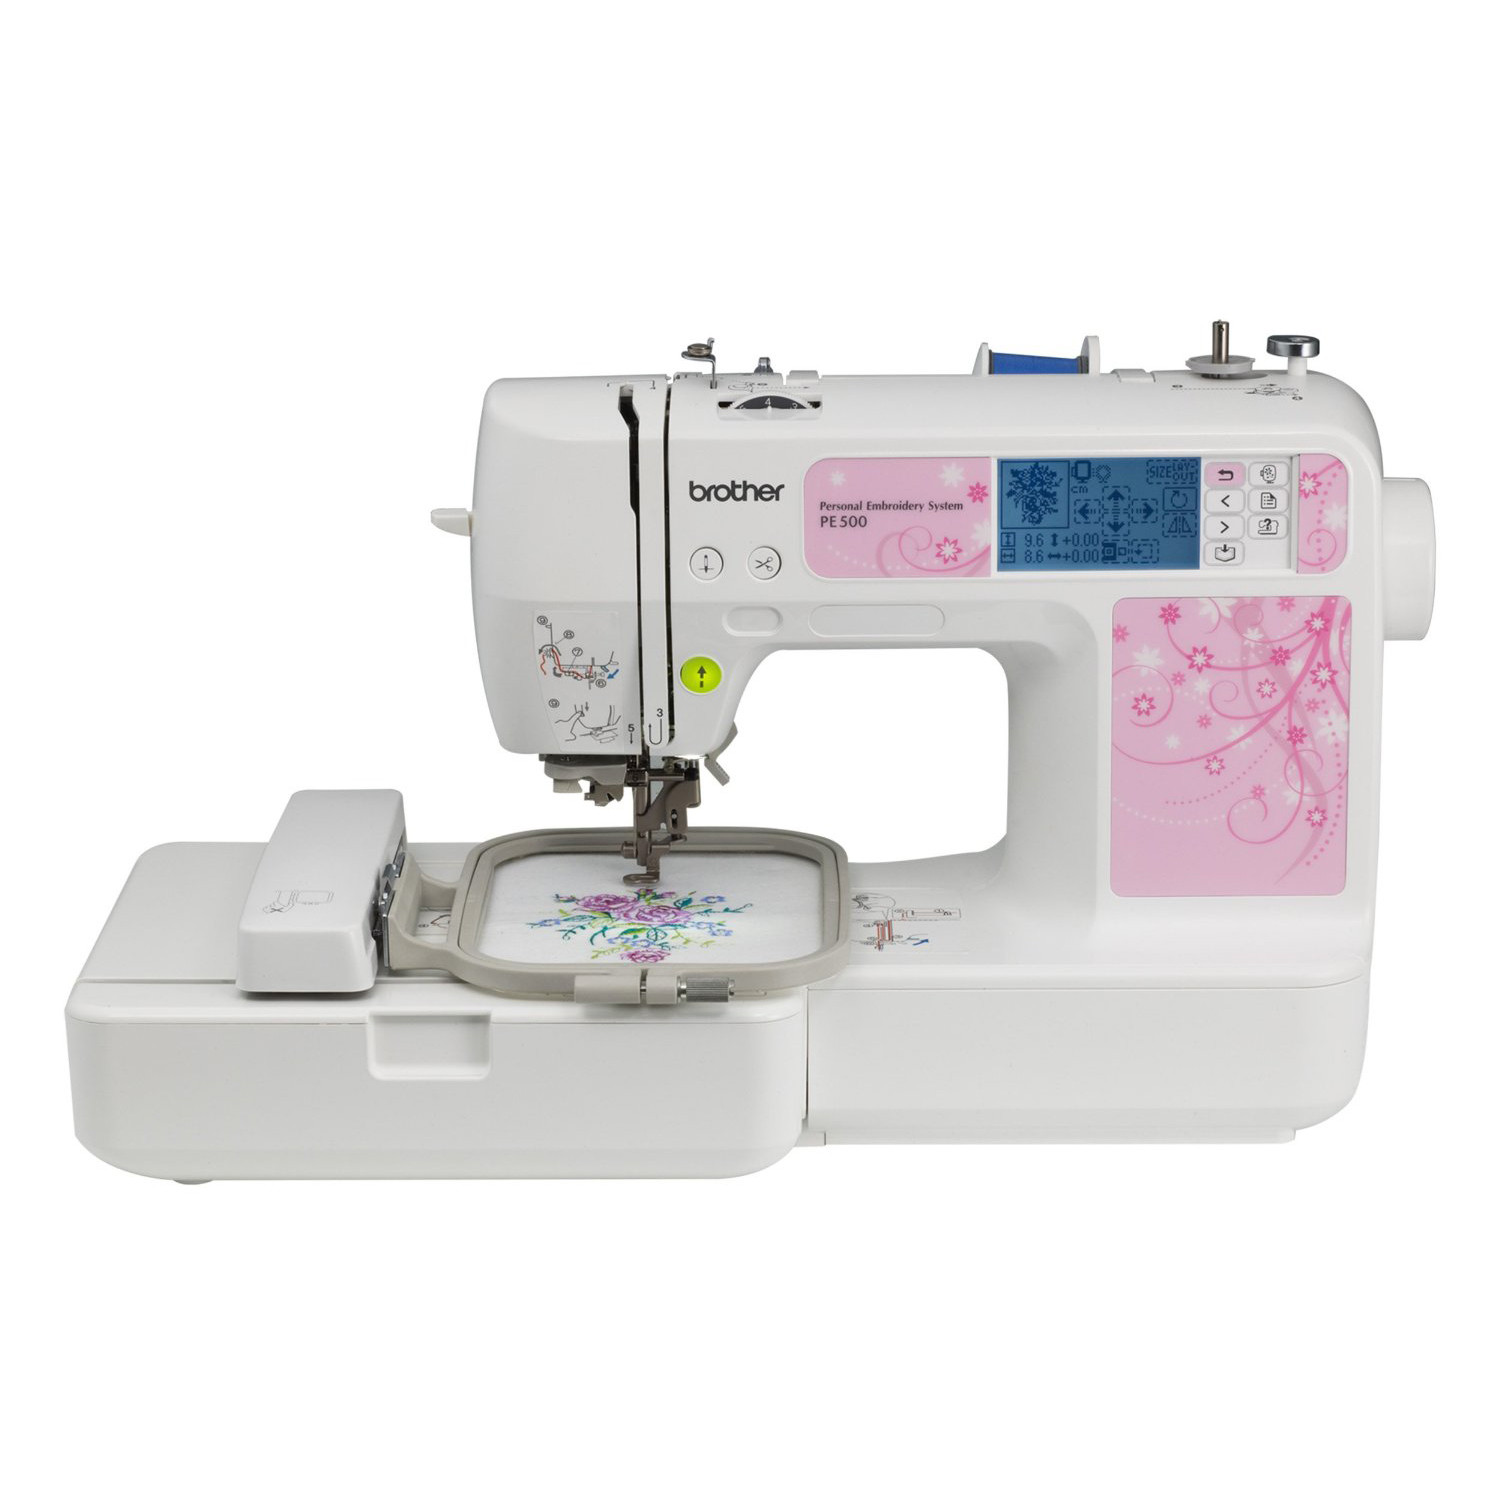 Embroidery Machine New Brother Se400 Vs Pe500 Battle Of the Brother Embroidery Of Innovative 43 Pictures Embroidery Machine